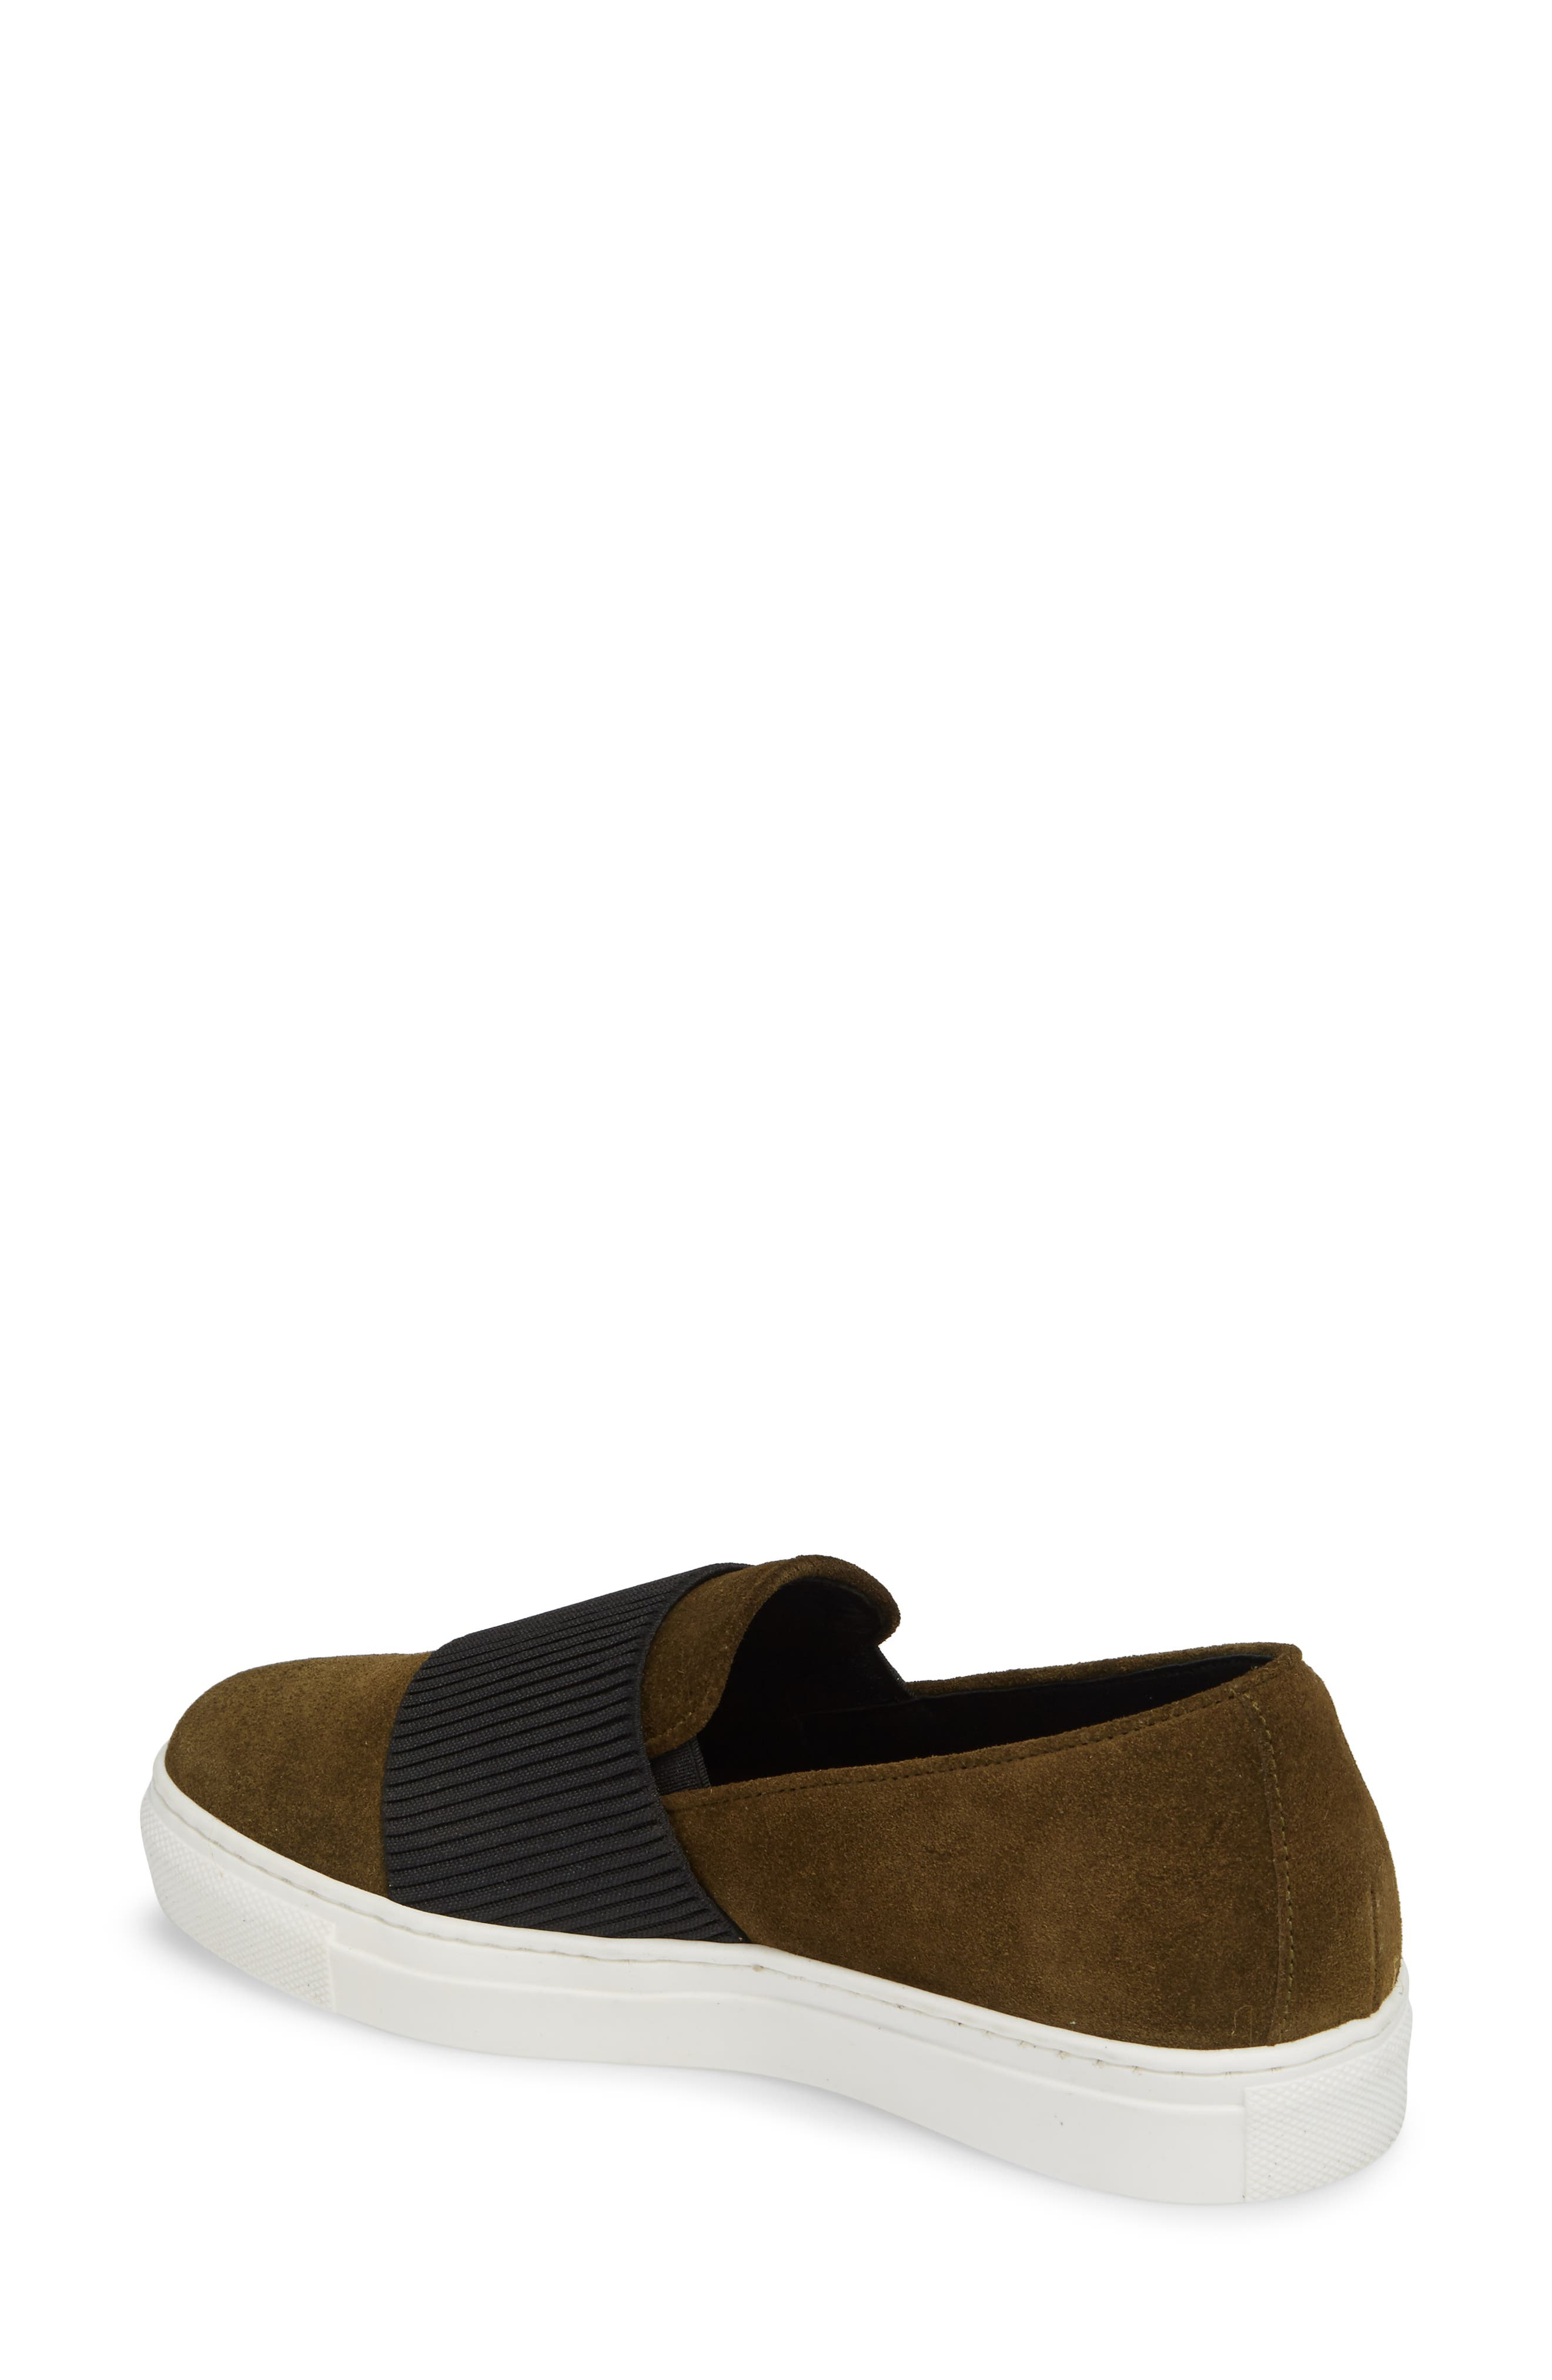 Otto Slip-On Sneaker,                             Alternate thumbnail 2, color,                             MILITARY PRINT SUEDE